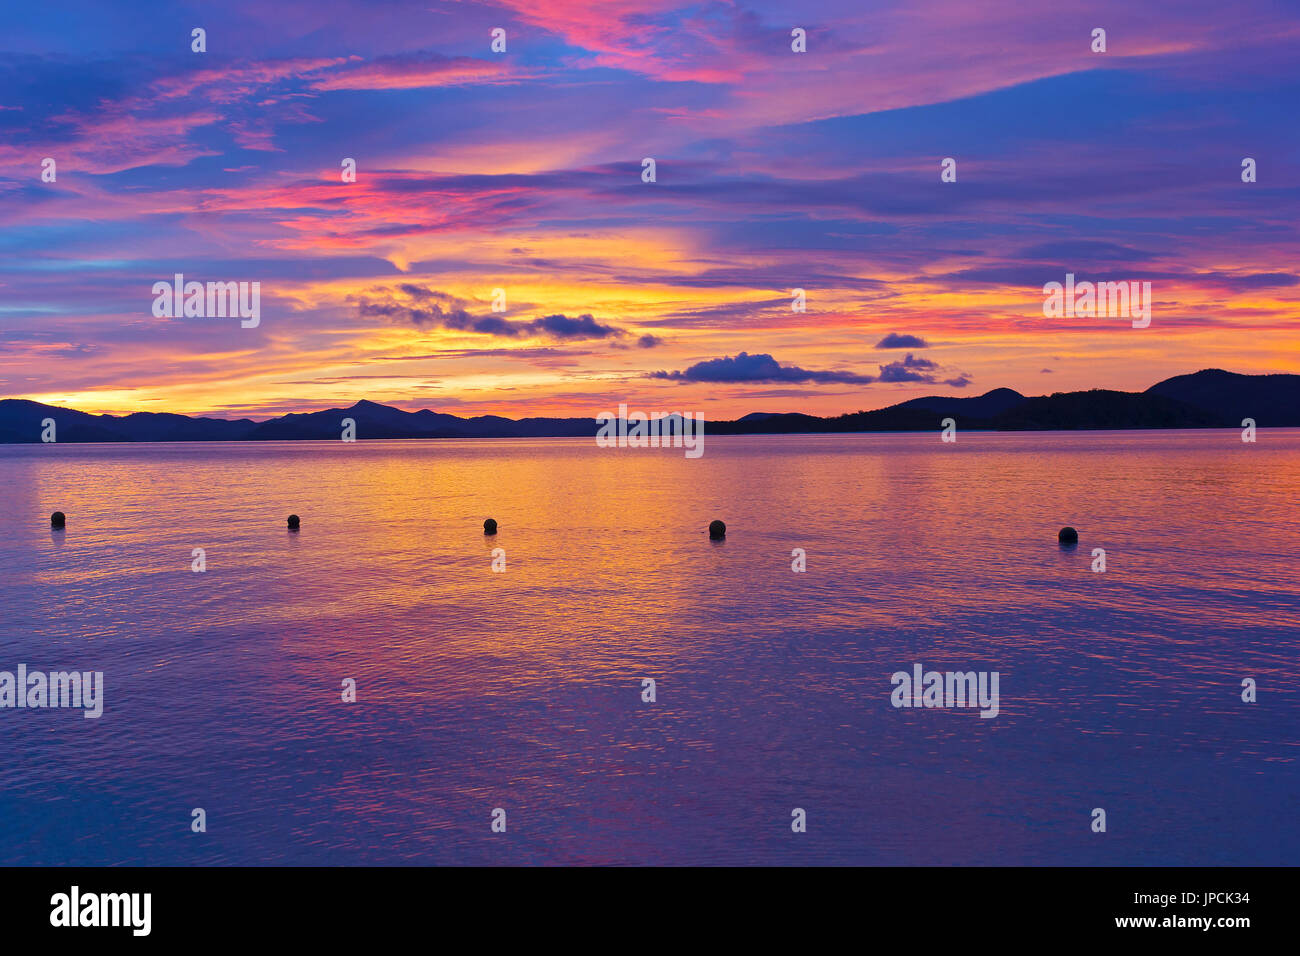 Unearthly sunset colors on a tropical island. Ocean landscape with mountain ridges on the horizon at sunset. - Stock Image